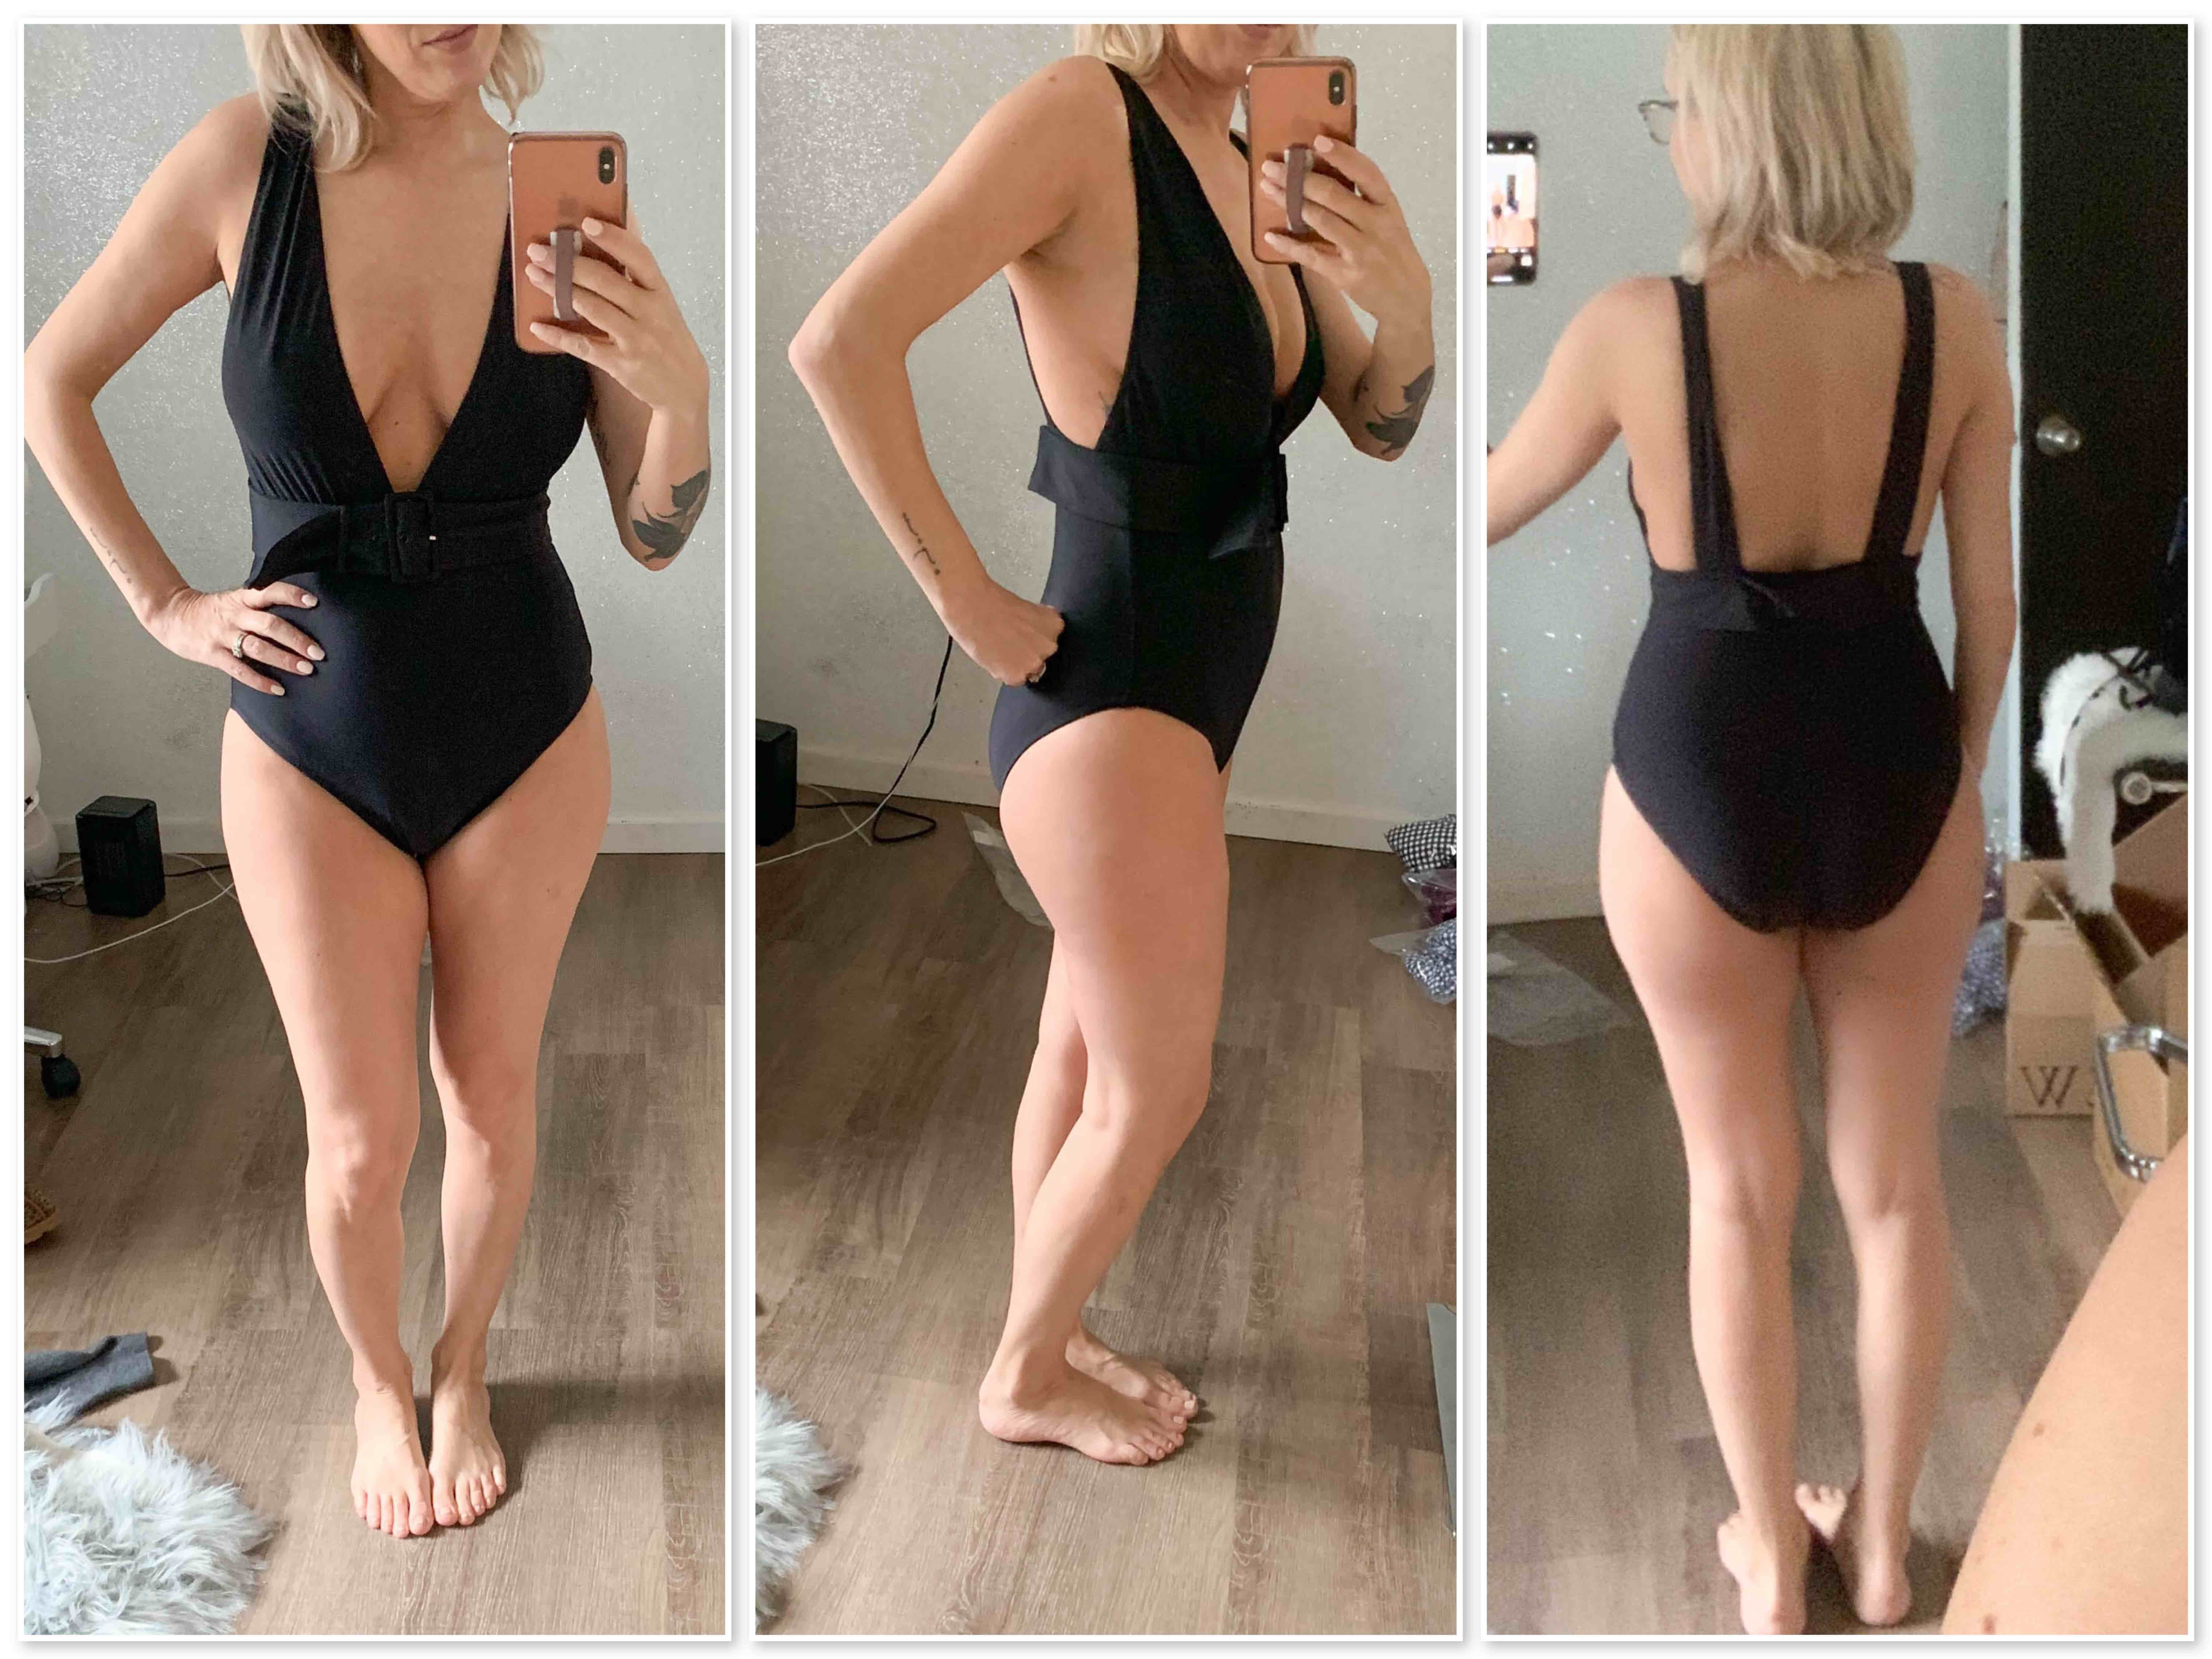 Found: cute 1-piece bathing suits. J.Crew's swimsuits are pretty, fun & sexy — plus, flattering for several women's body types. See my #dressingroomselfies.